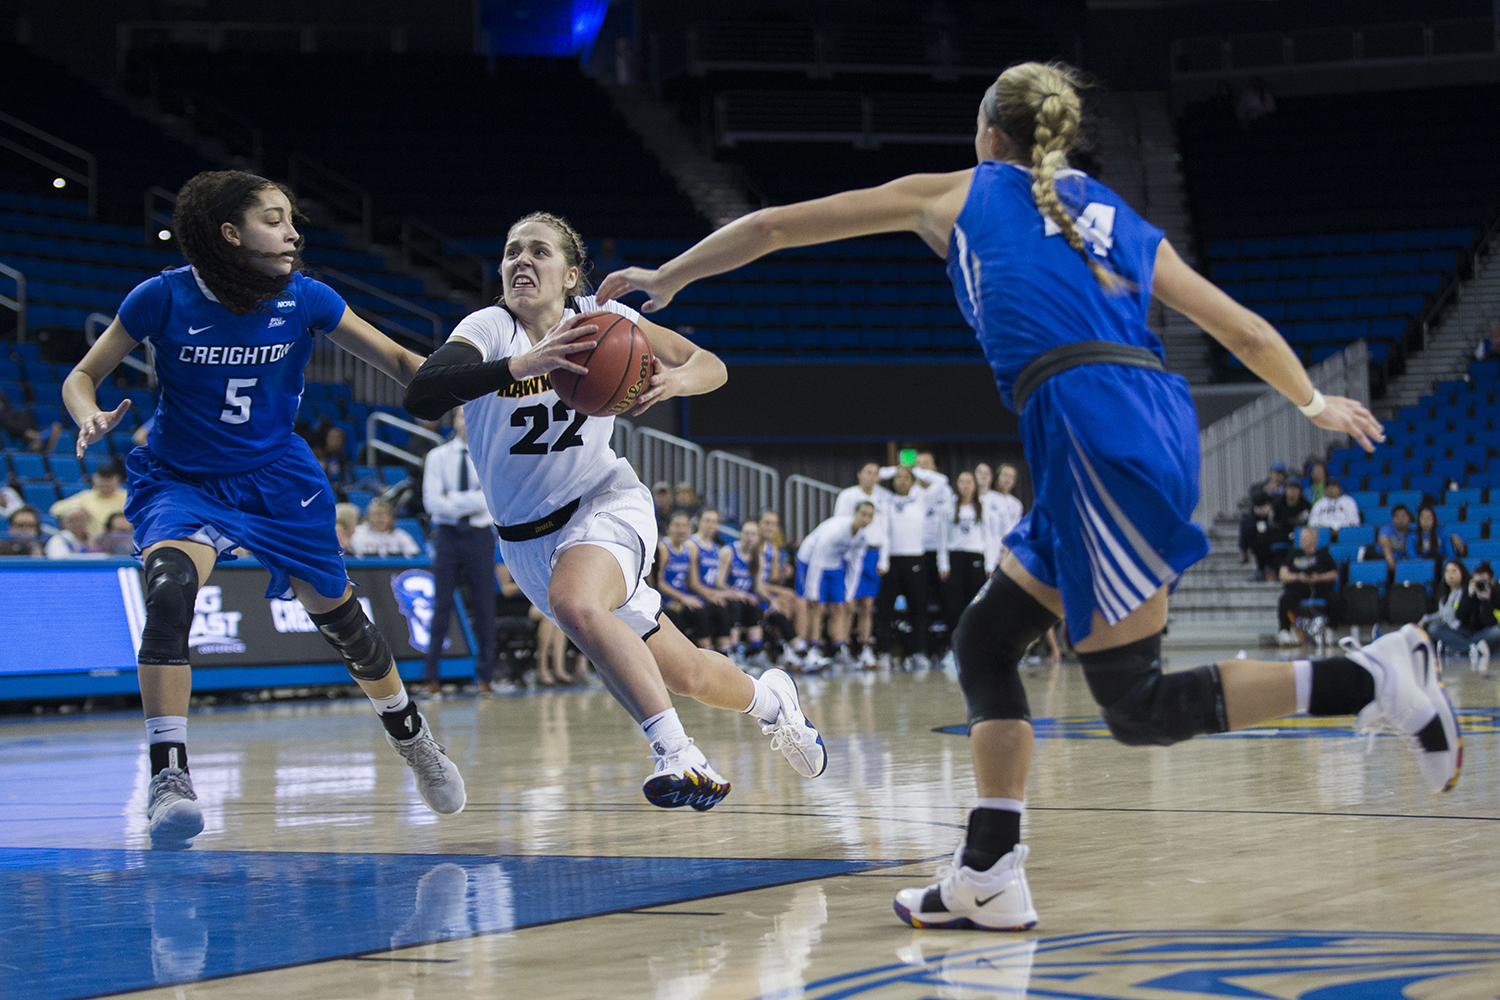 Iowa guard Kathleen Doyle drives to the hoop during the Iowa/Creighton NCAA tournament first round basketball game at Pauley Pavilion on UCLA's campus in Los Angeles on Saturday, March 17, 2018. The Bluejays defeated the Hawkeyes, 76-70.